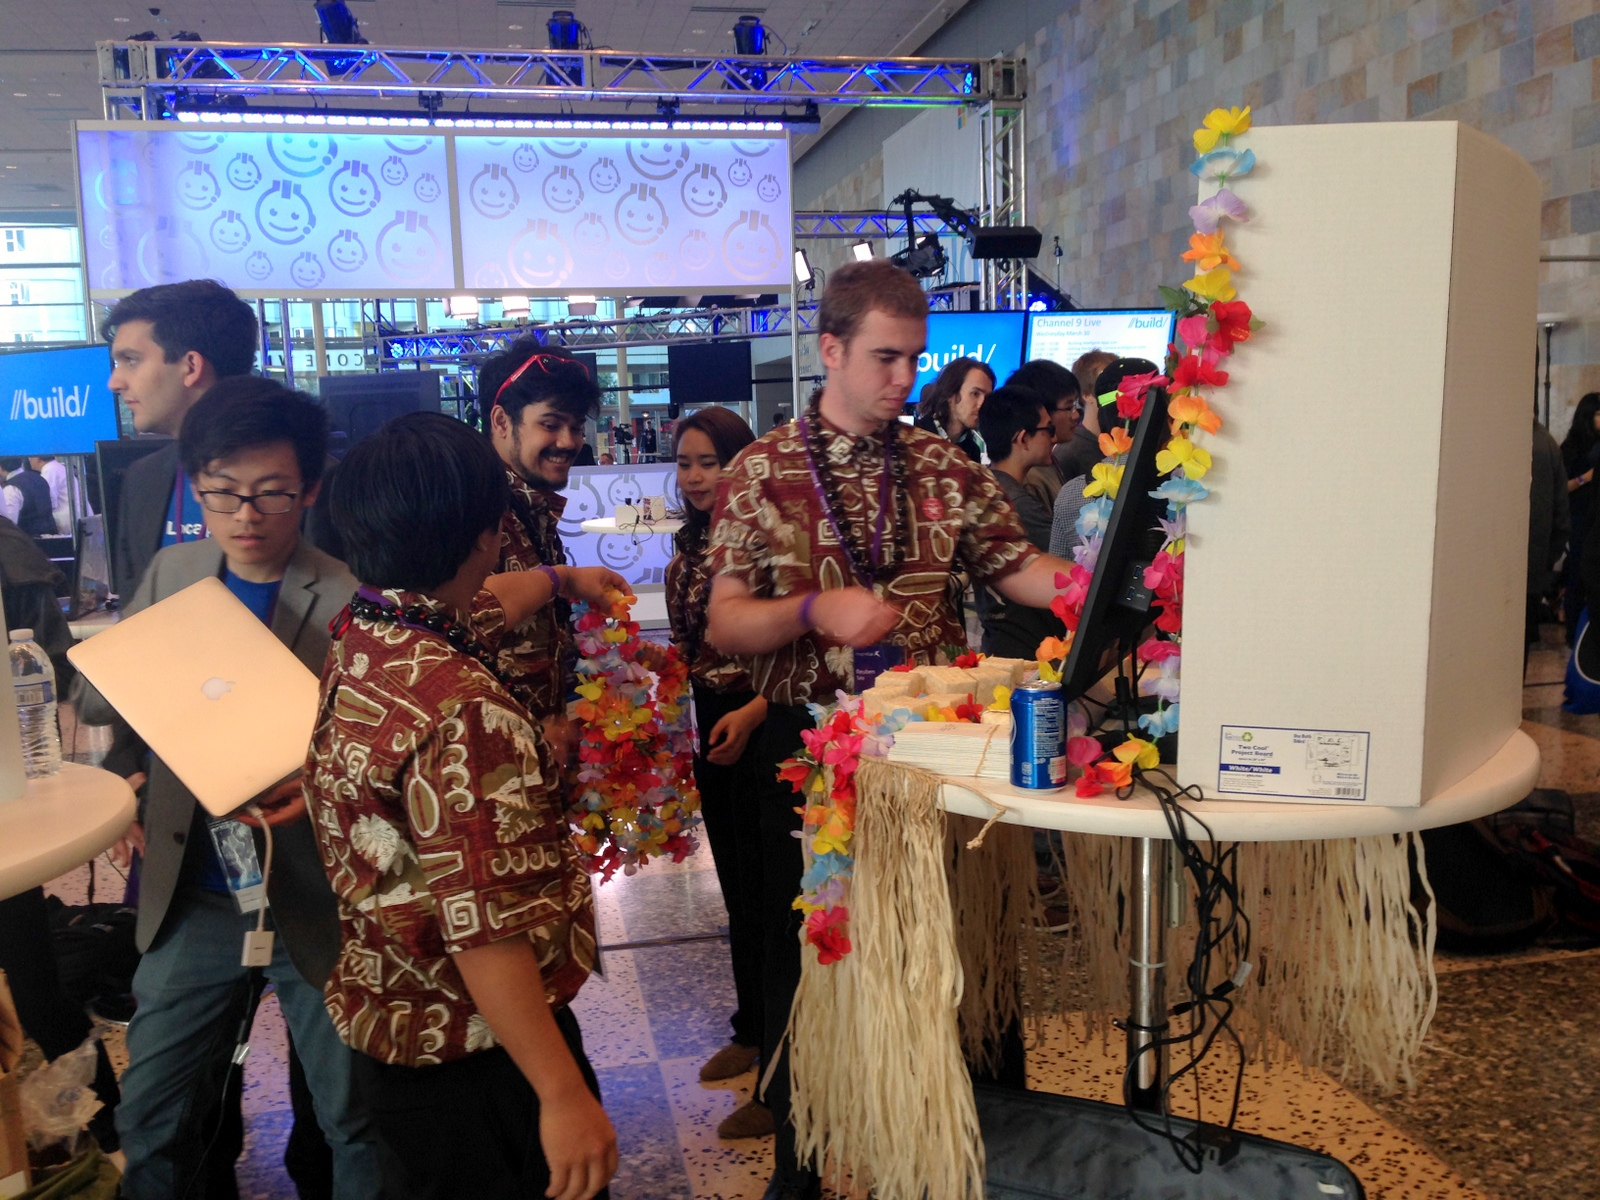 The team at their booth in their matching aloha shirts. Their display has a hula skirt hanging from around the table edge and lei decorate the computer screen.